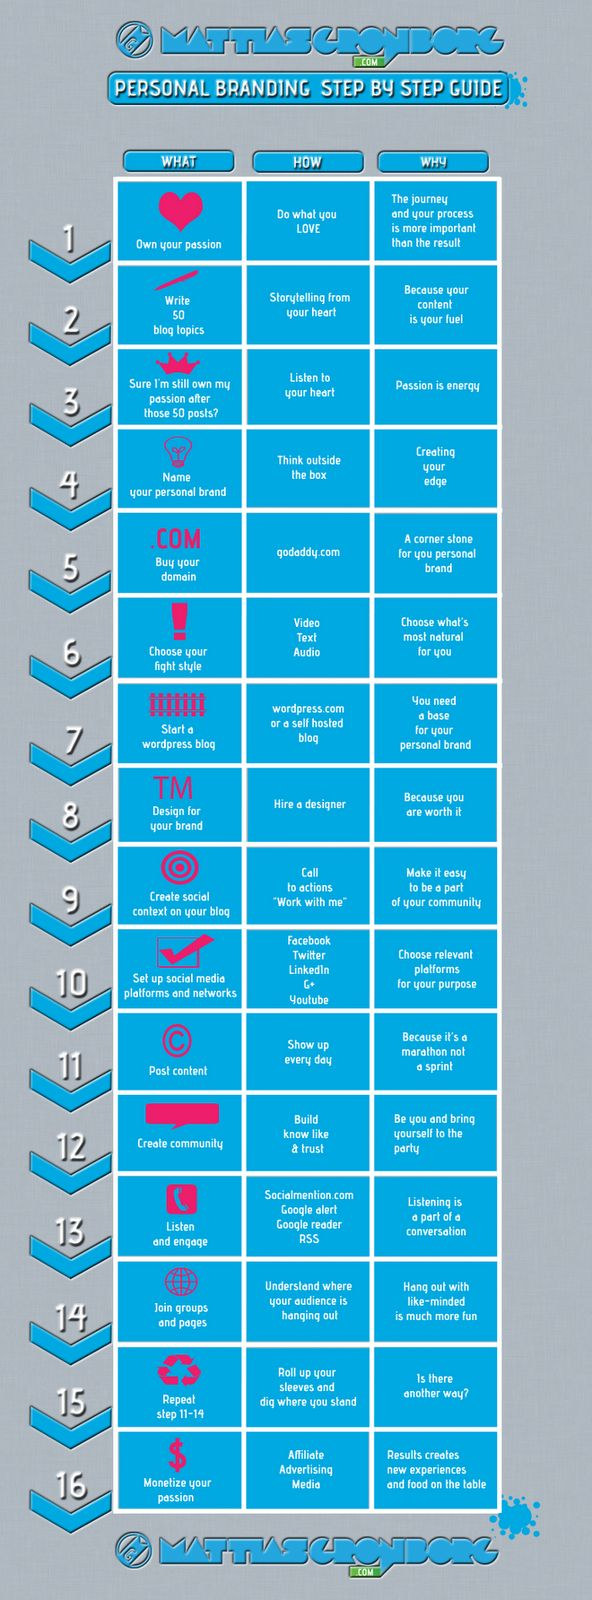 Personal branding: step by step guide #infographic